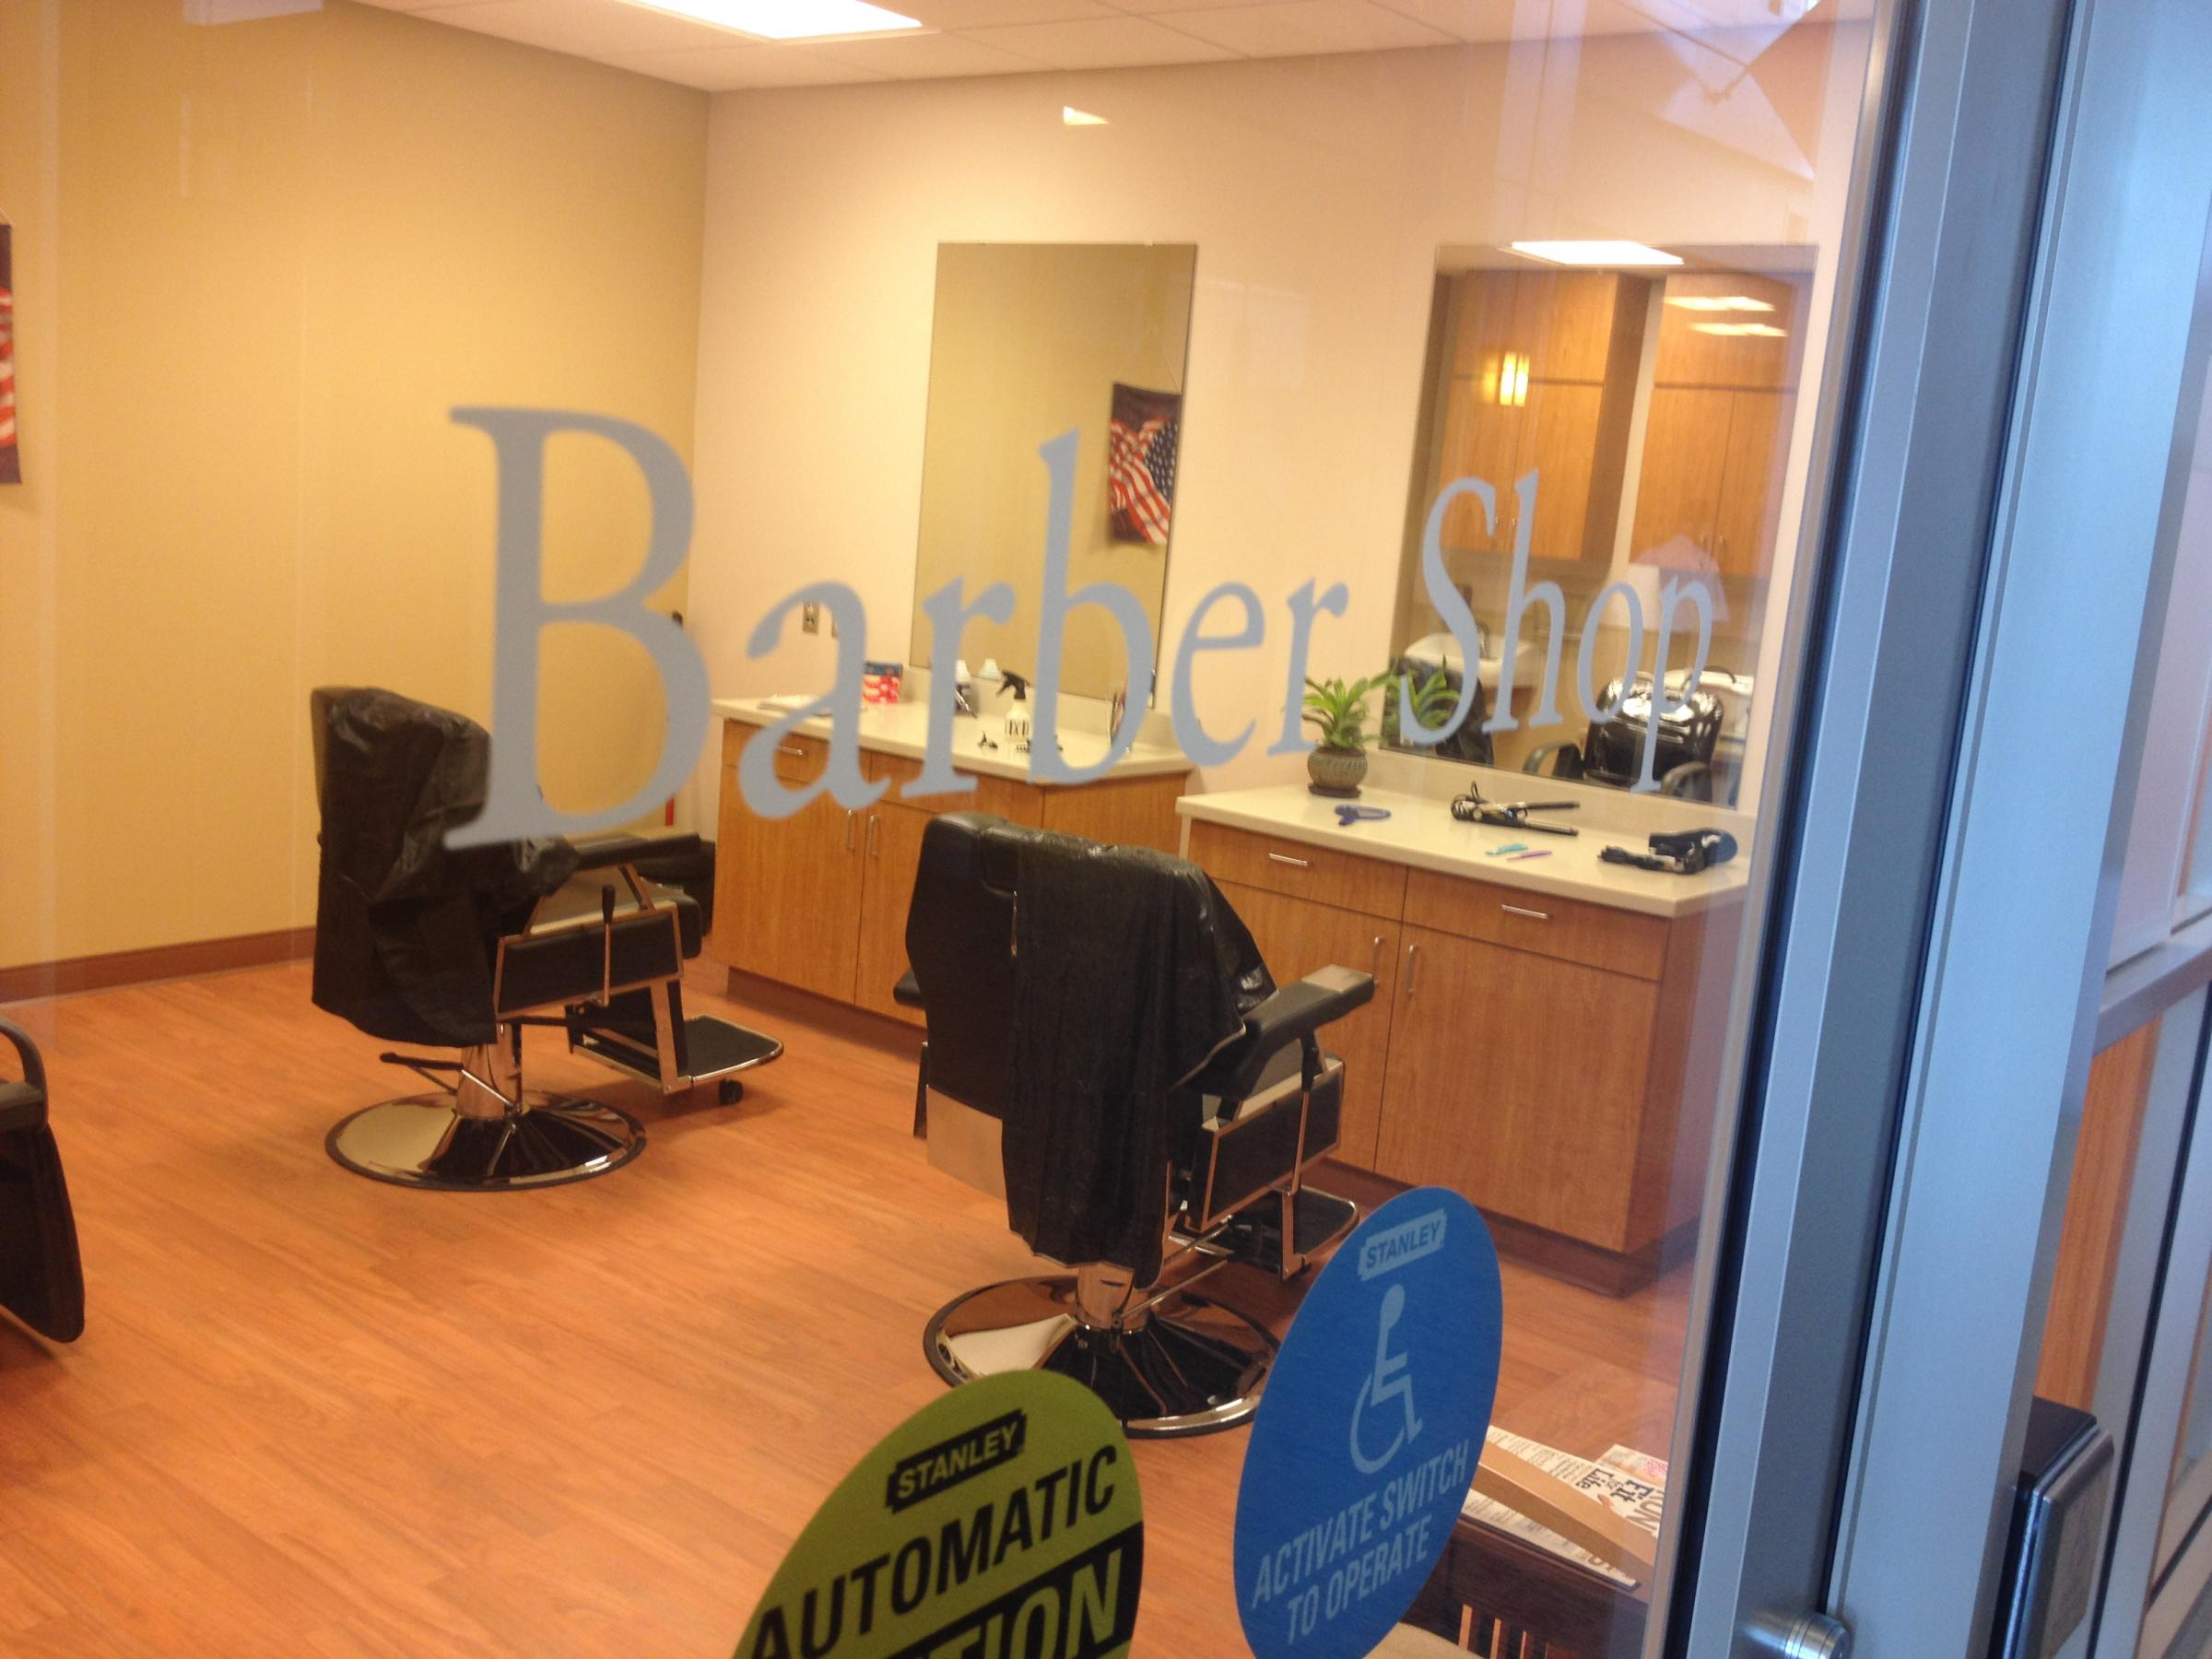 Barber Shop Fresno : ... corridor is lined with shops like a barber shop and a general store